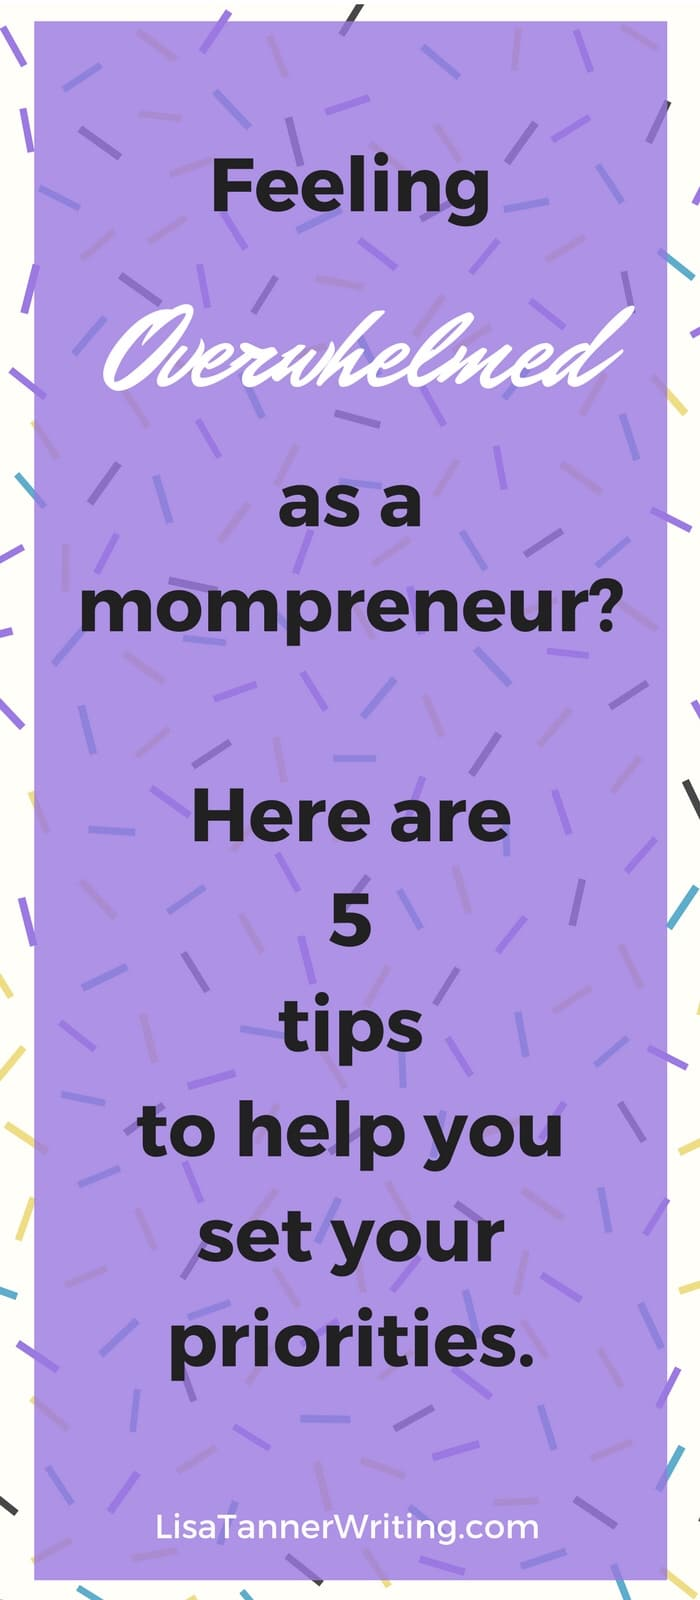 Are you an overwhelmed mompreneur? Here are five tips to help you set your priorities. #workathome #fightoverwhelm #mompreneur